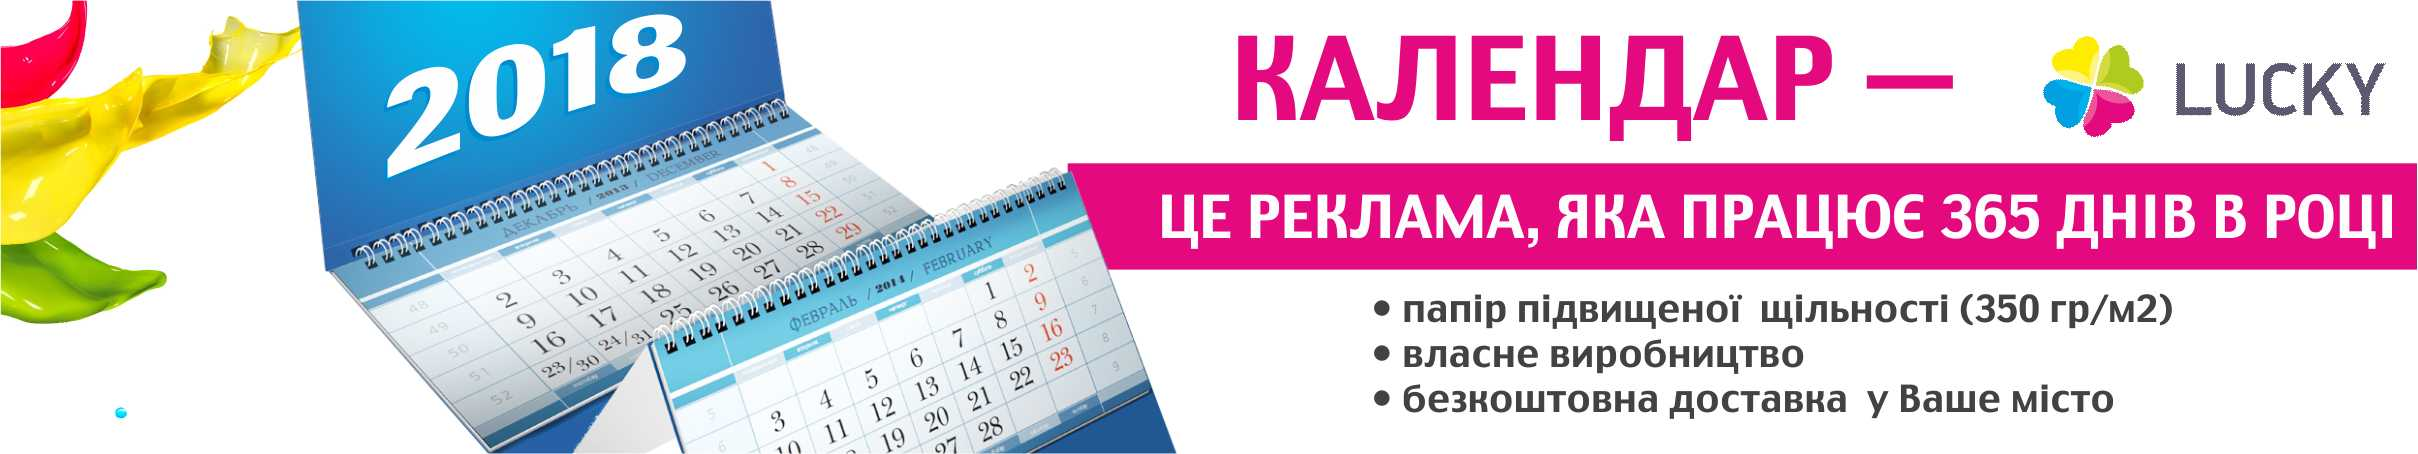 kalendar_kvartalnyj_on-line